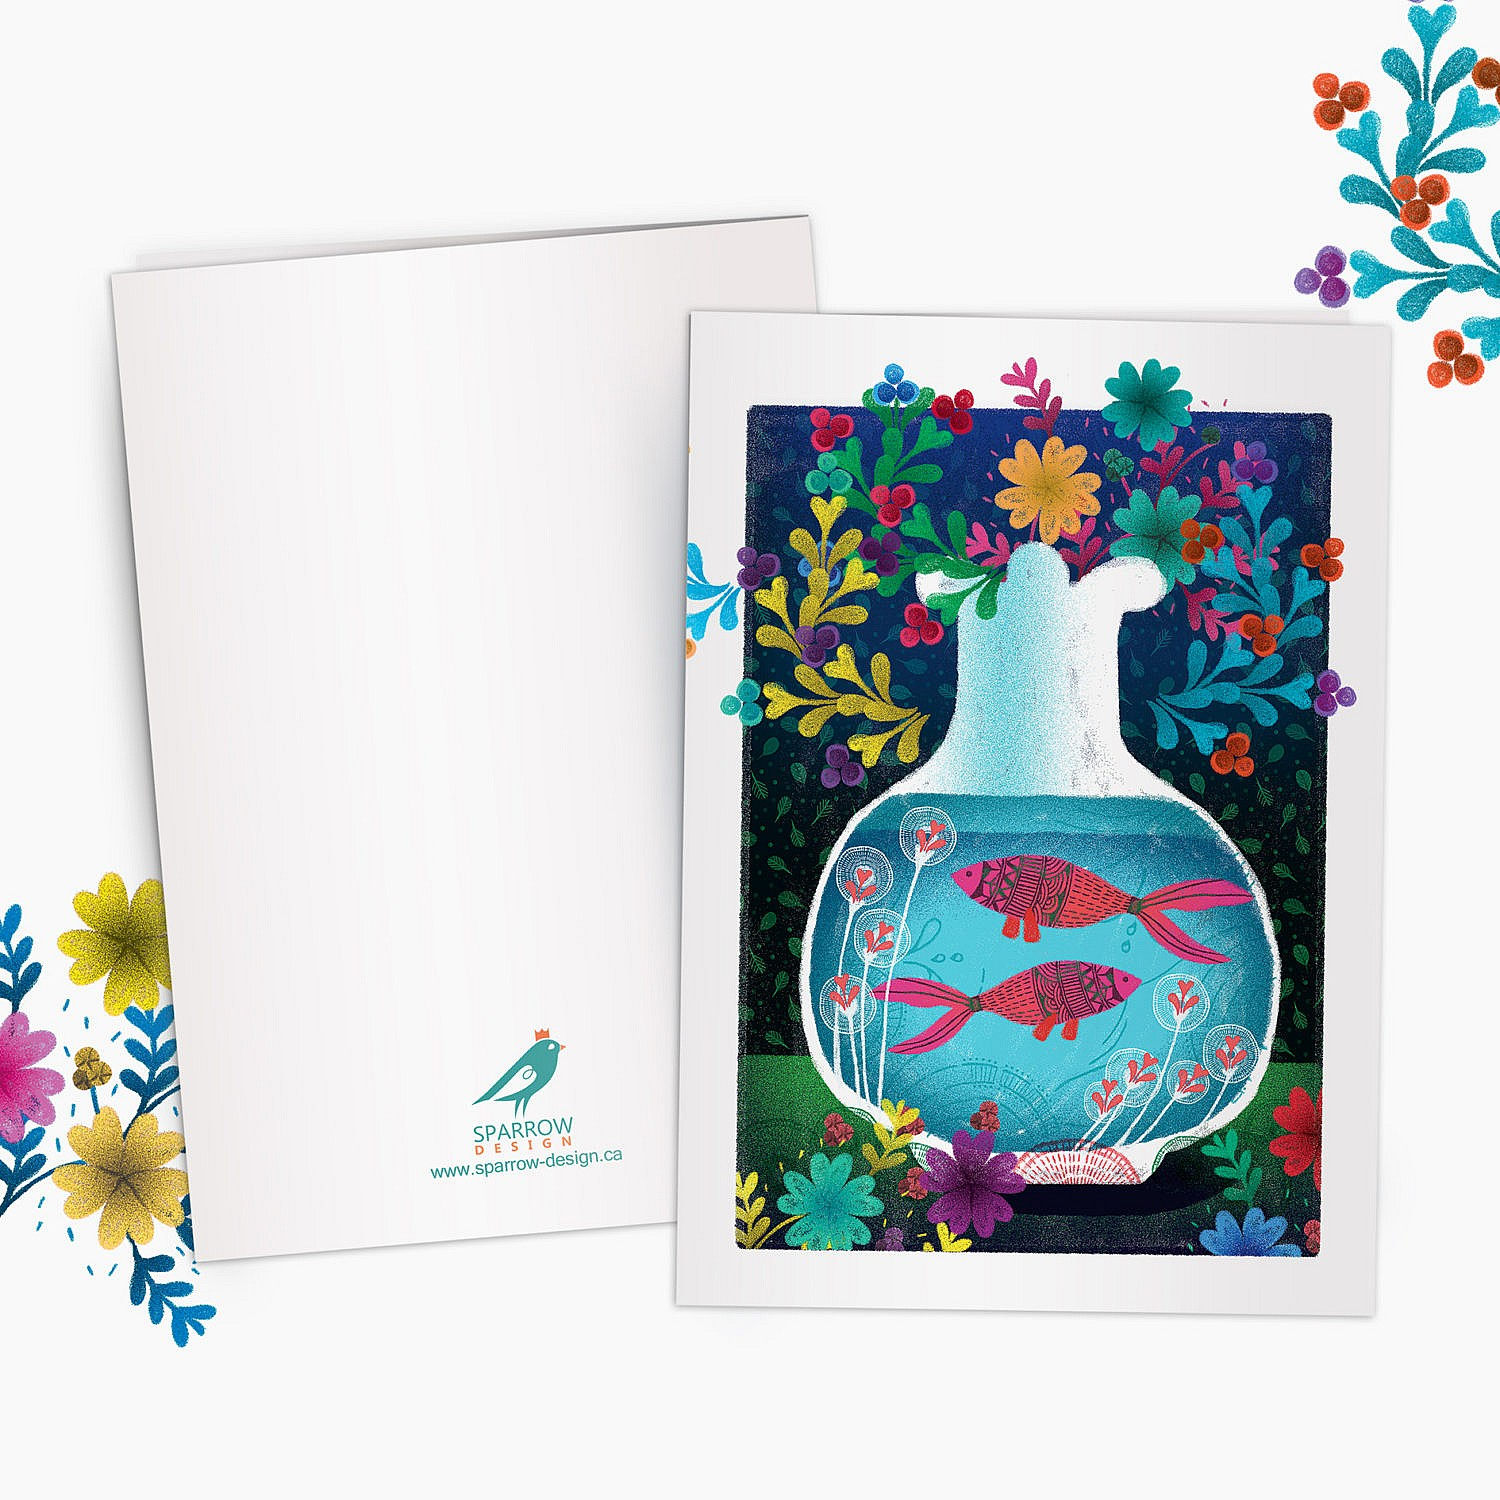 The image is showing a spring scenery. Two beautiful goldfish are in the foreground. On the background there are colorful flowers. This greeting card is perfect for nowruz festival.